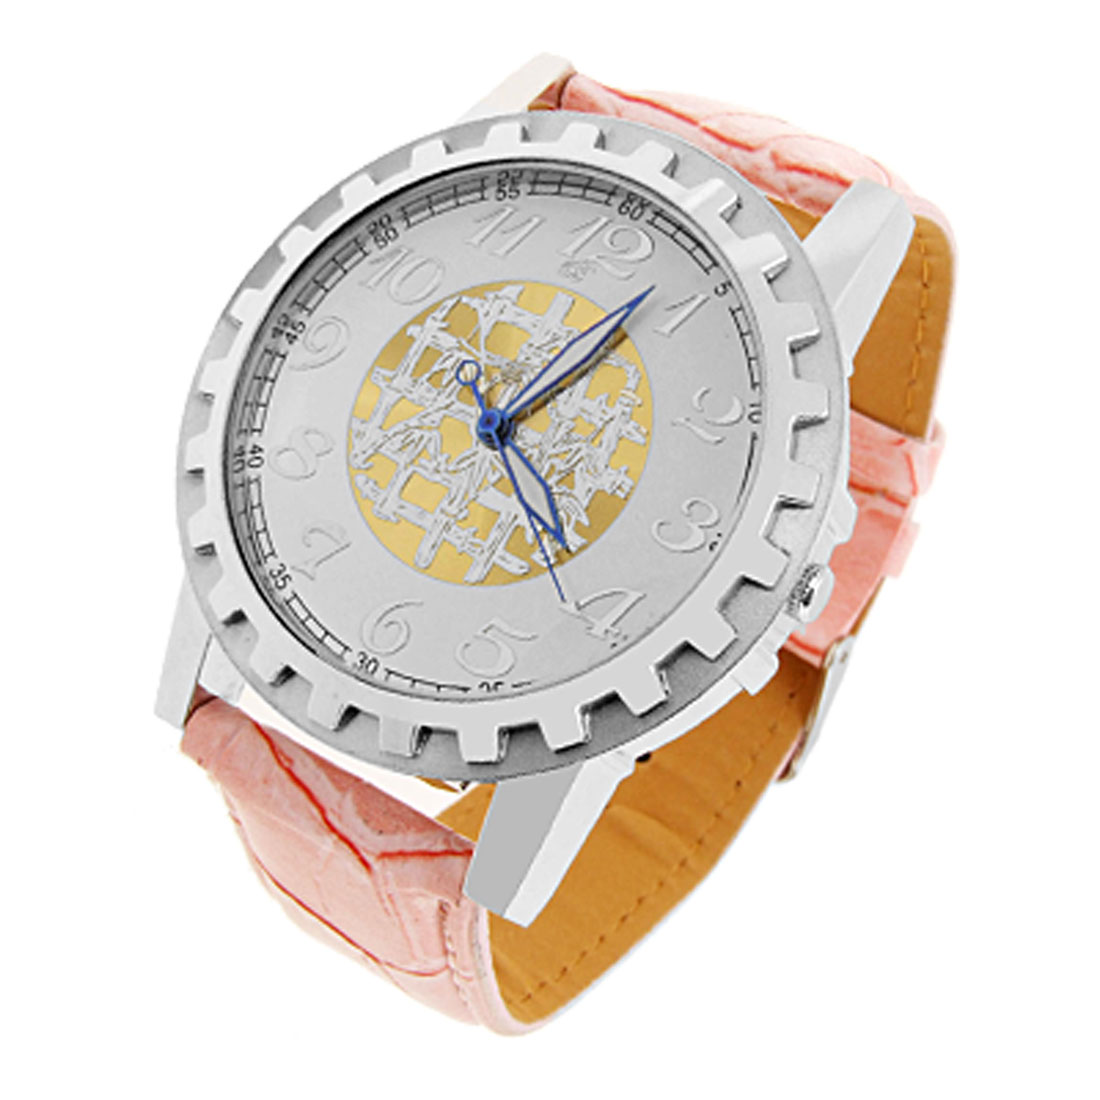 Jewelry UXcell Electrum Night Vision Faux Leather Men's Quartz Watch Pink